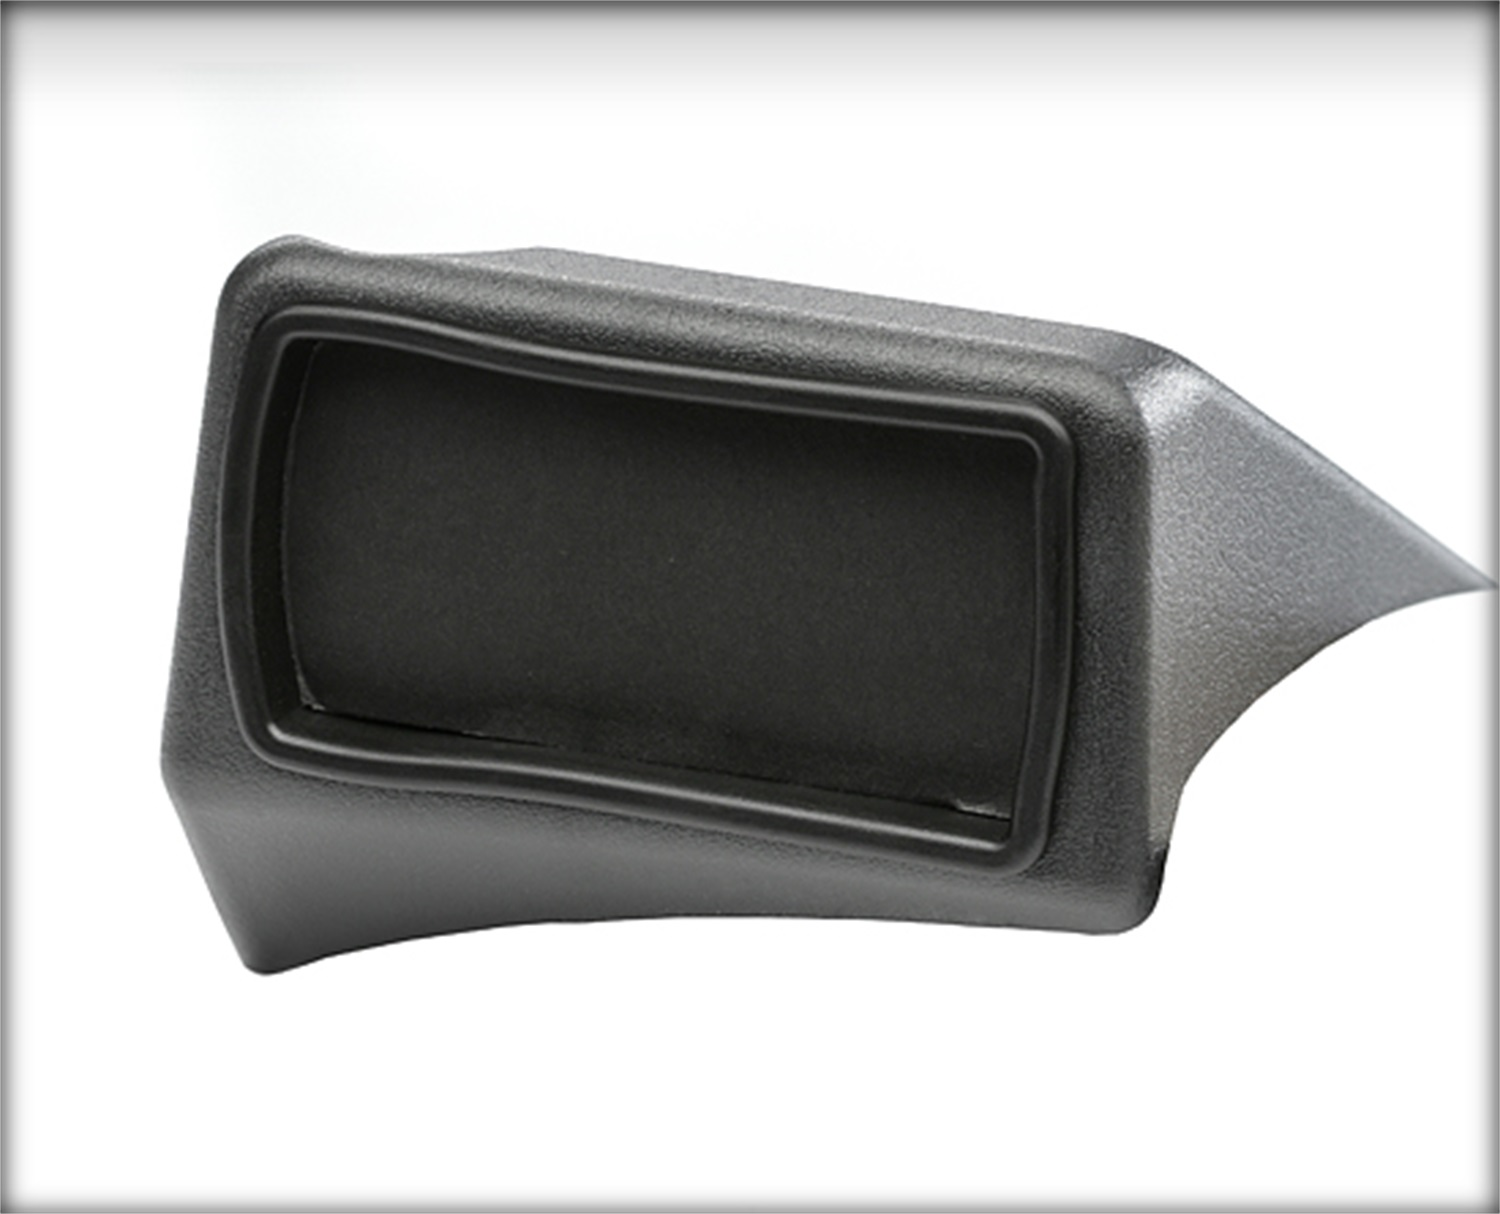 Edge Products 38504 Dodge Dash Pod Fits 03-05 Ram 1500 Ram 2500 Ram 3500